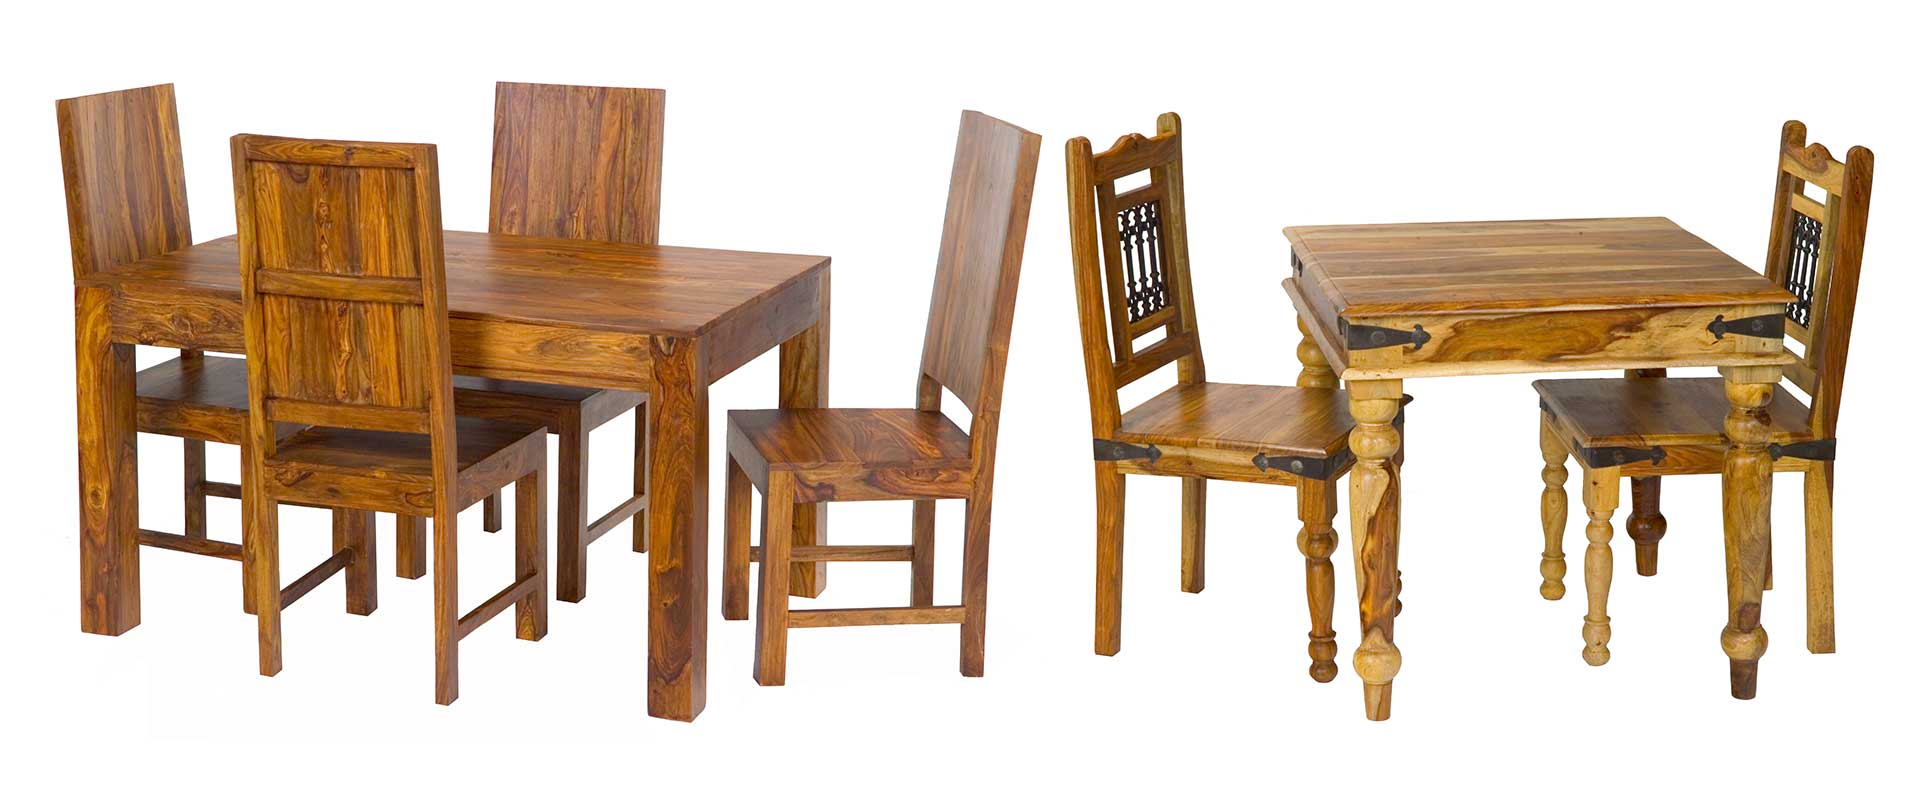 Solid Wood Dining Sets. Tables & Chairs.